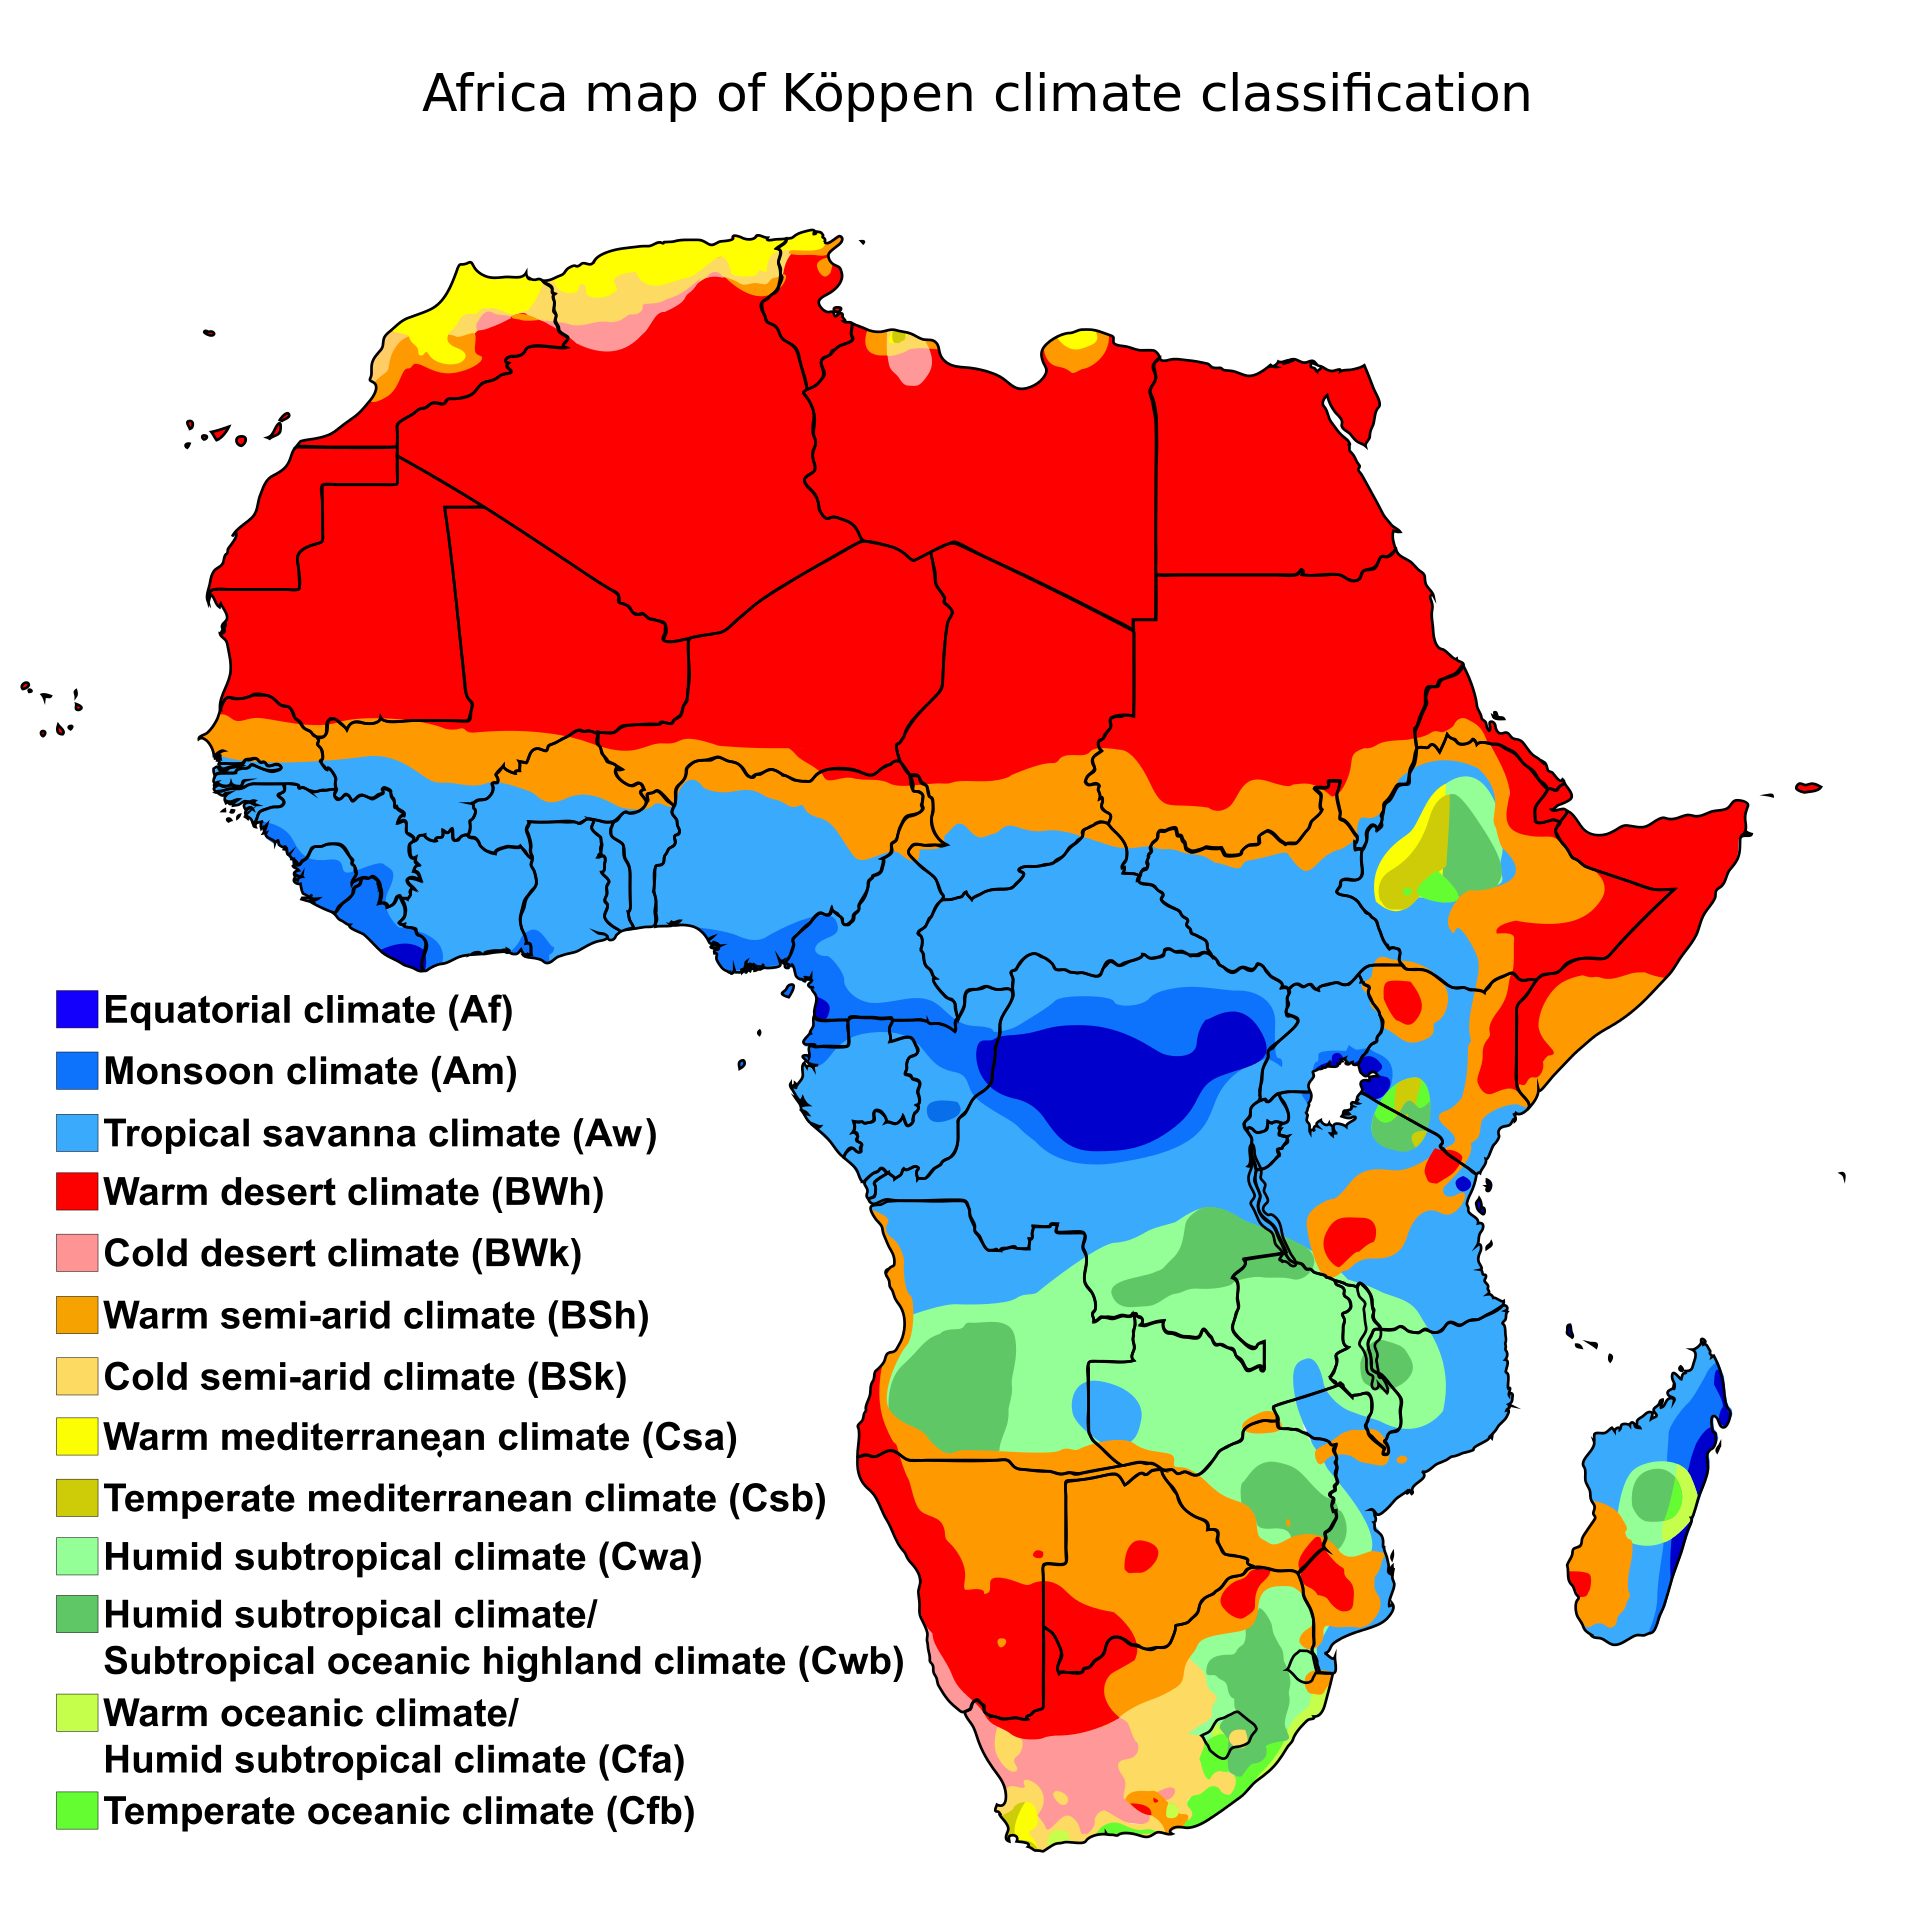 Climate zones of Africa, showing the ecological break between the